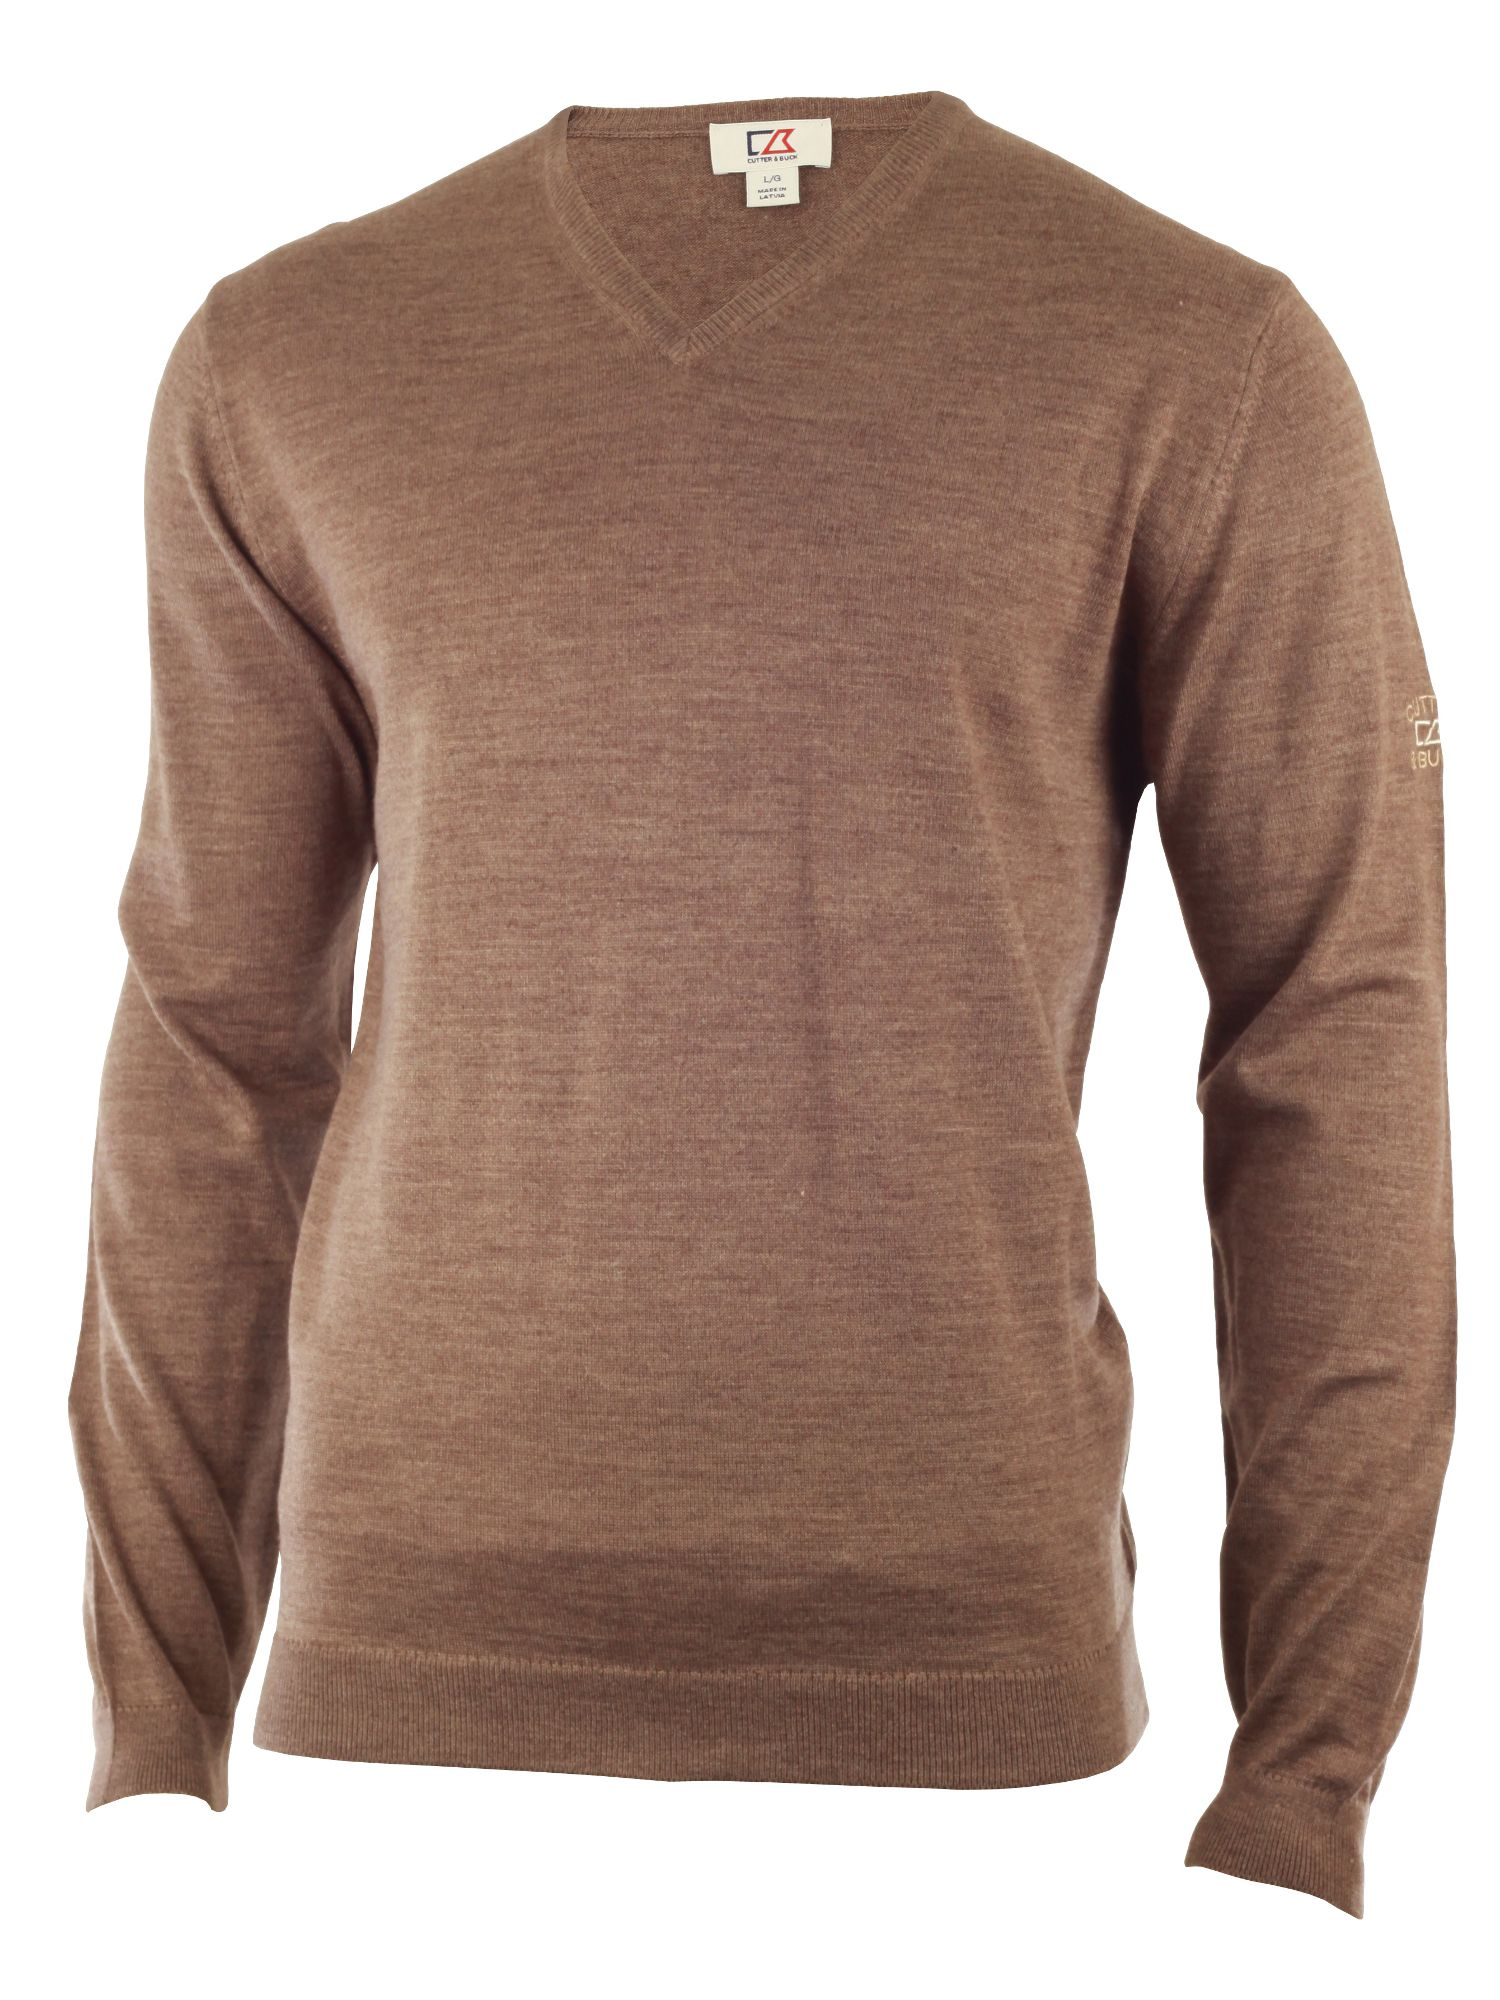 Cutter and Buck Men's Cutter and Buck Merino v neck sweater, Brown